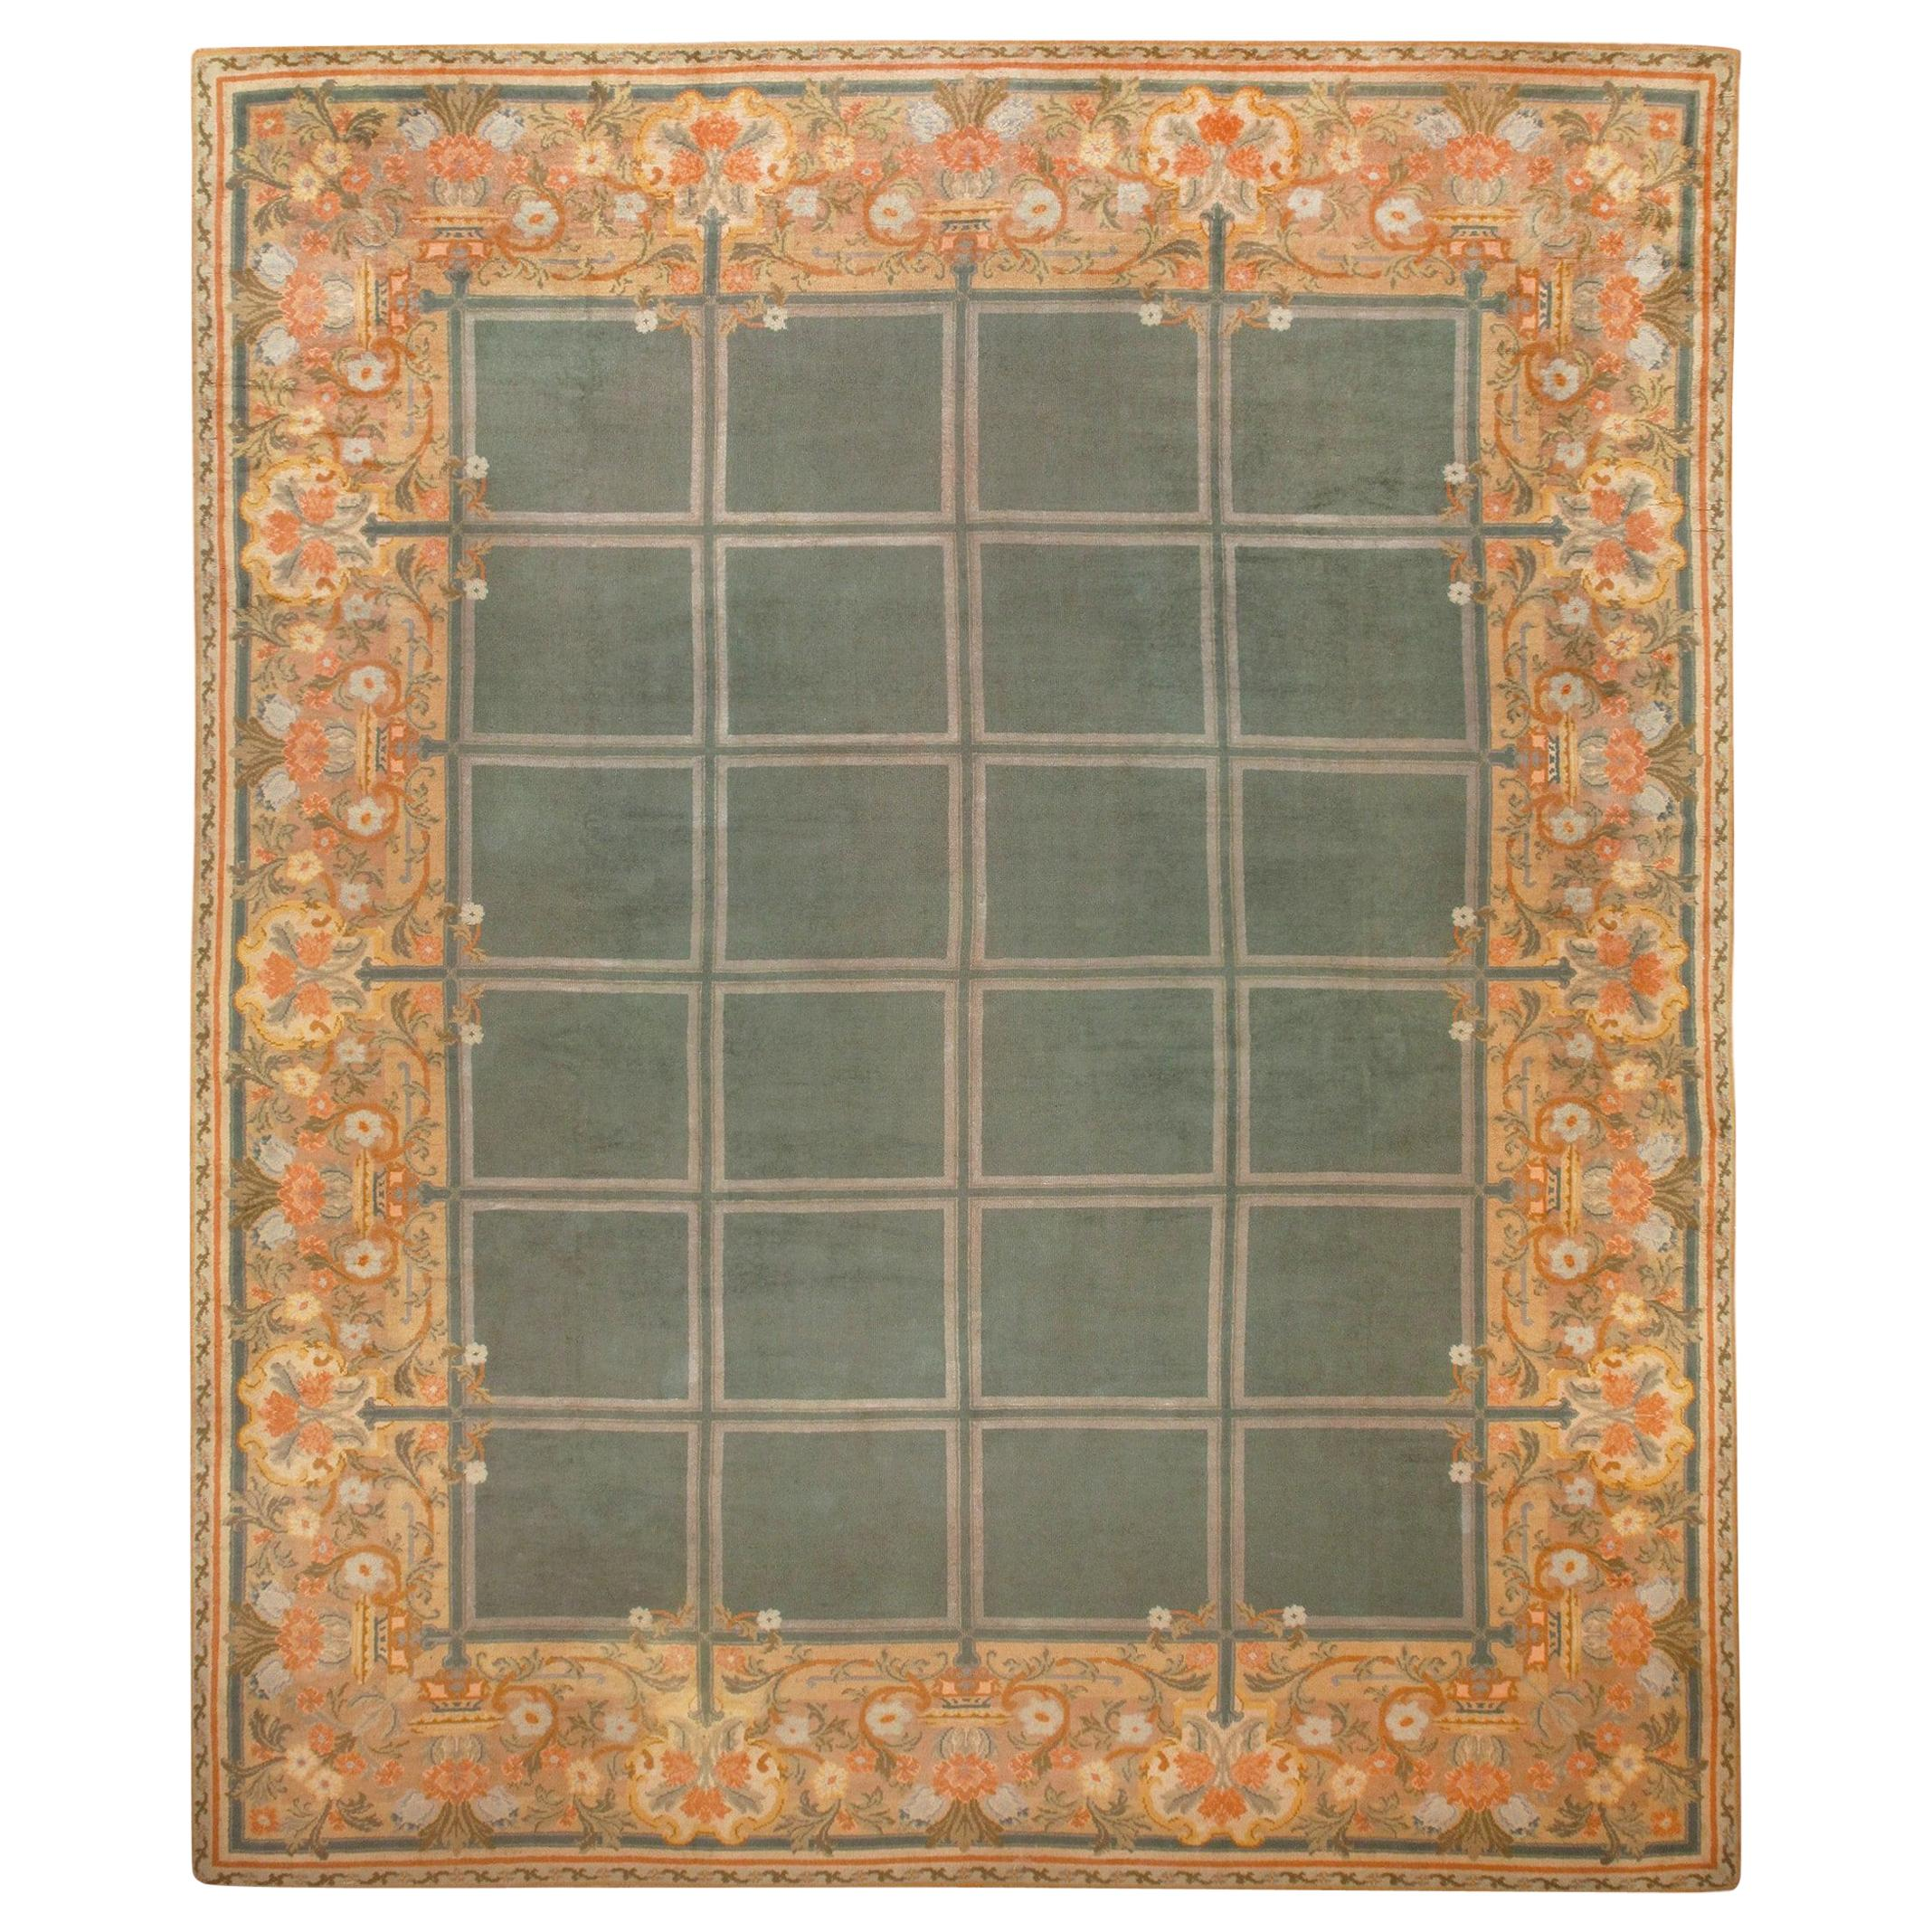 Large Green Antique Spanish Savonnerie Carpet. Size: 15 ft 6 in x 19 ft